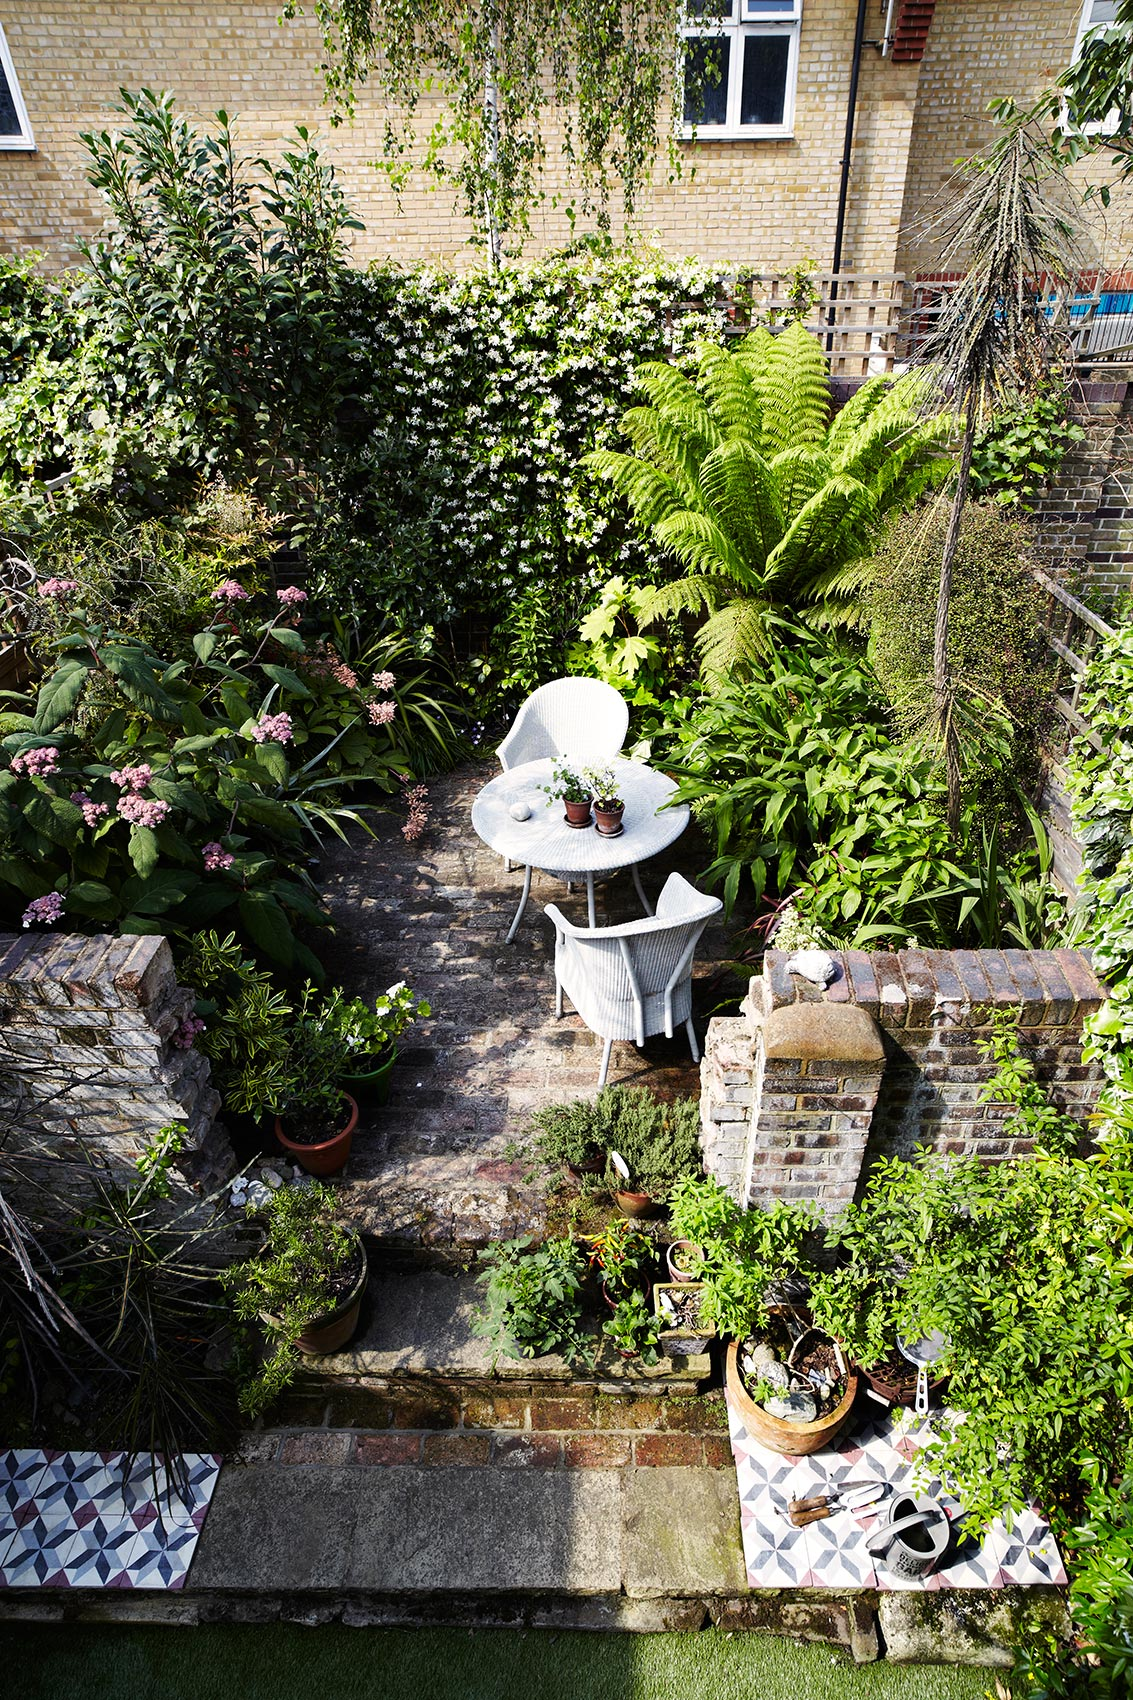 HOME_PeterGordon_Garden_03